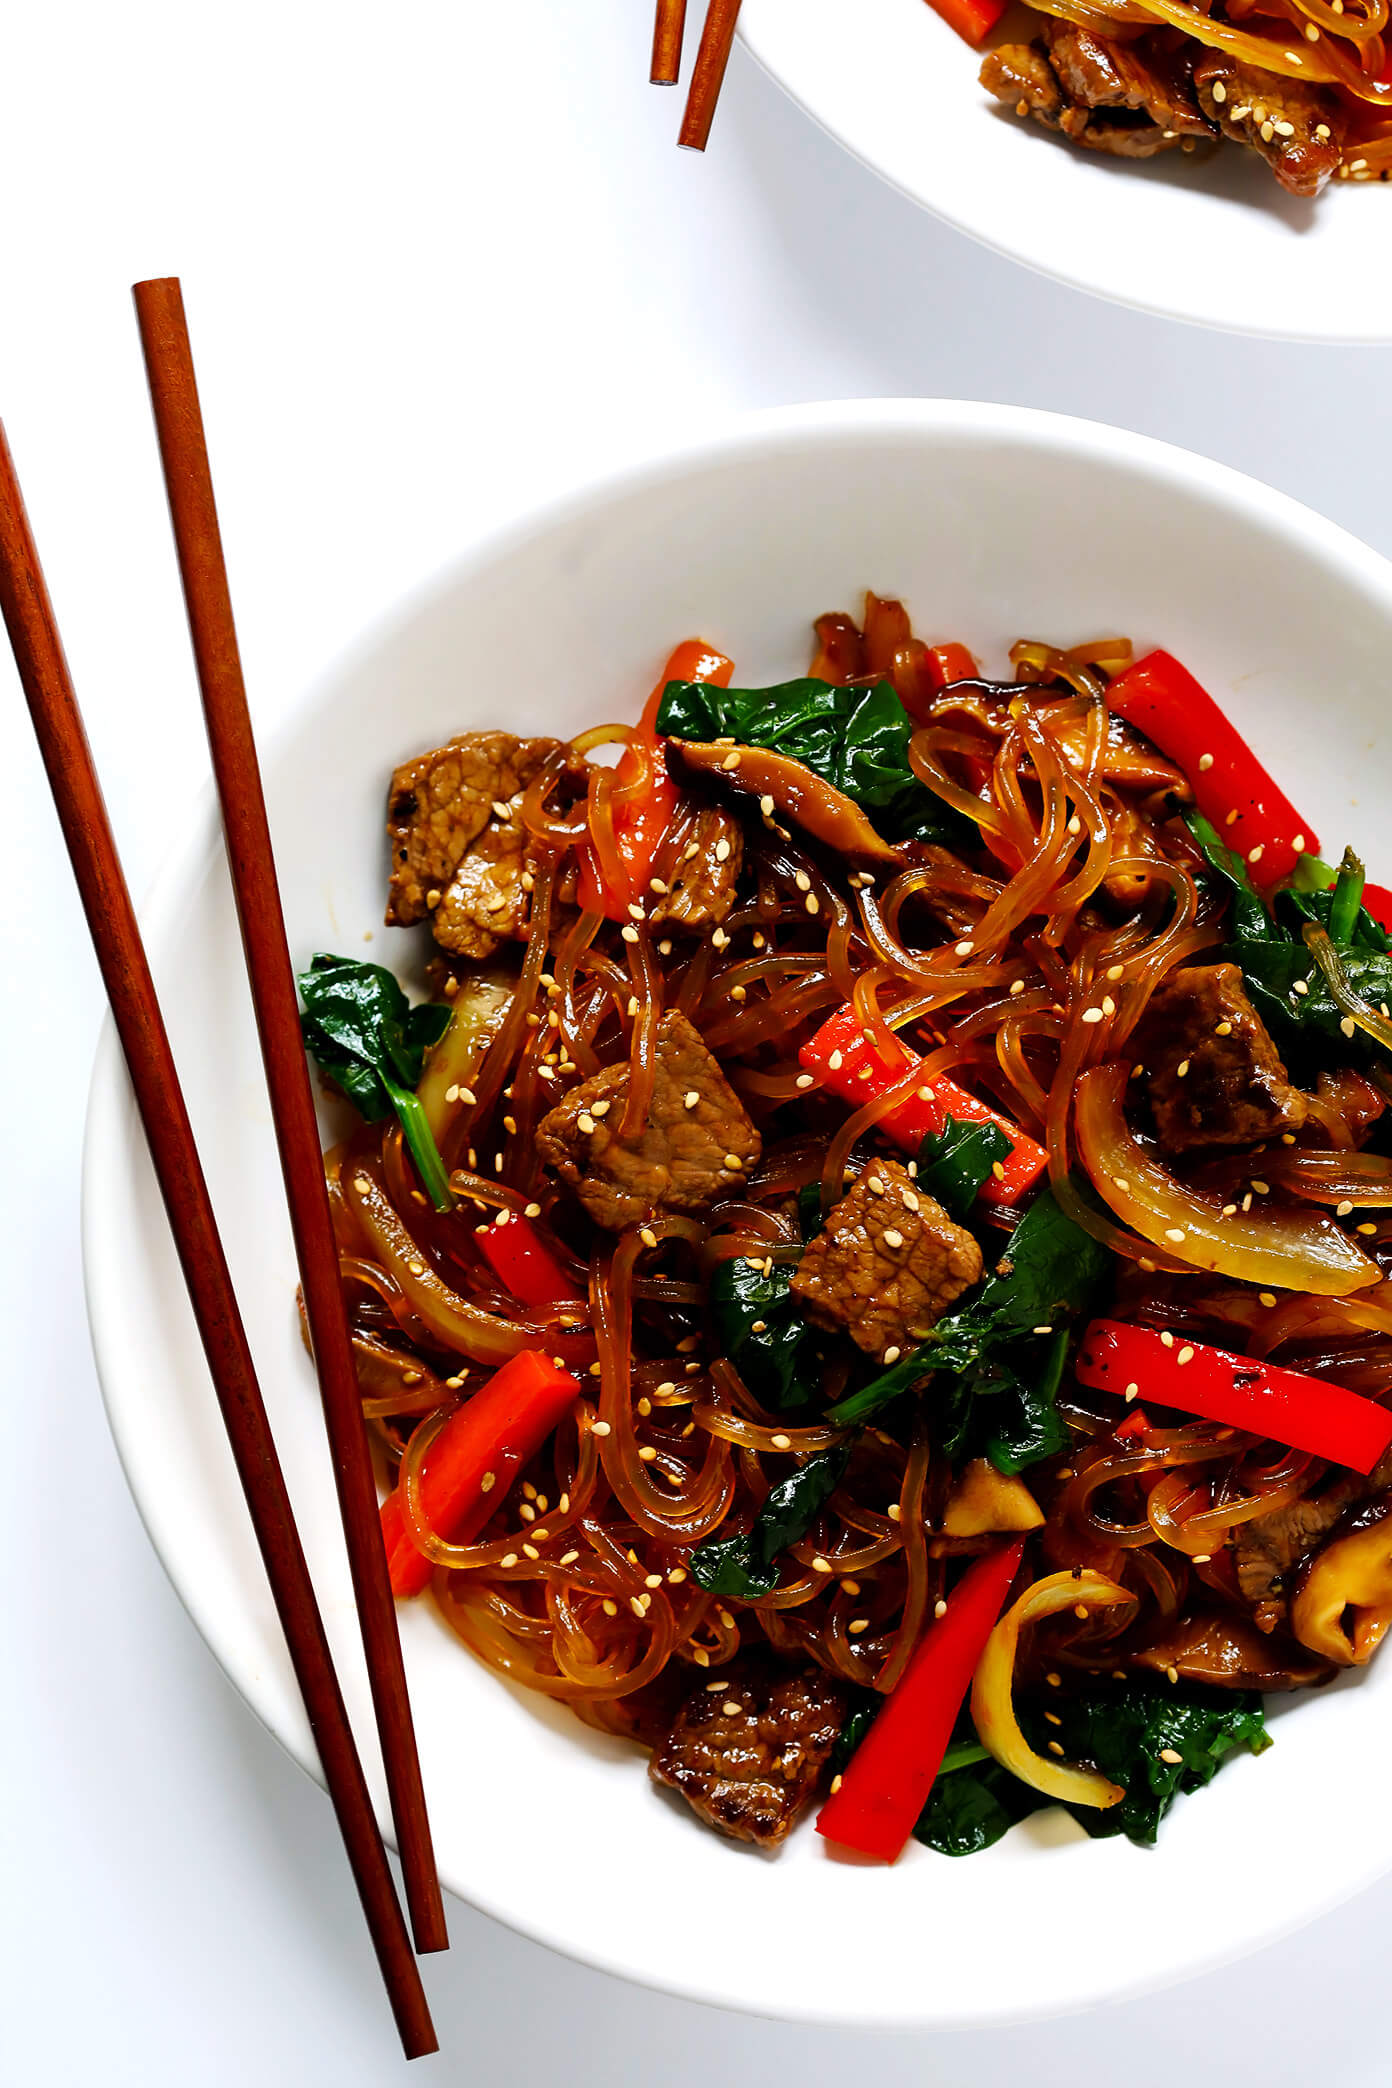 Japchae - Korean beef noodle stir-fry in bowl with chopsticks